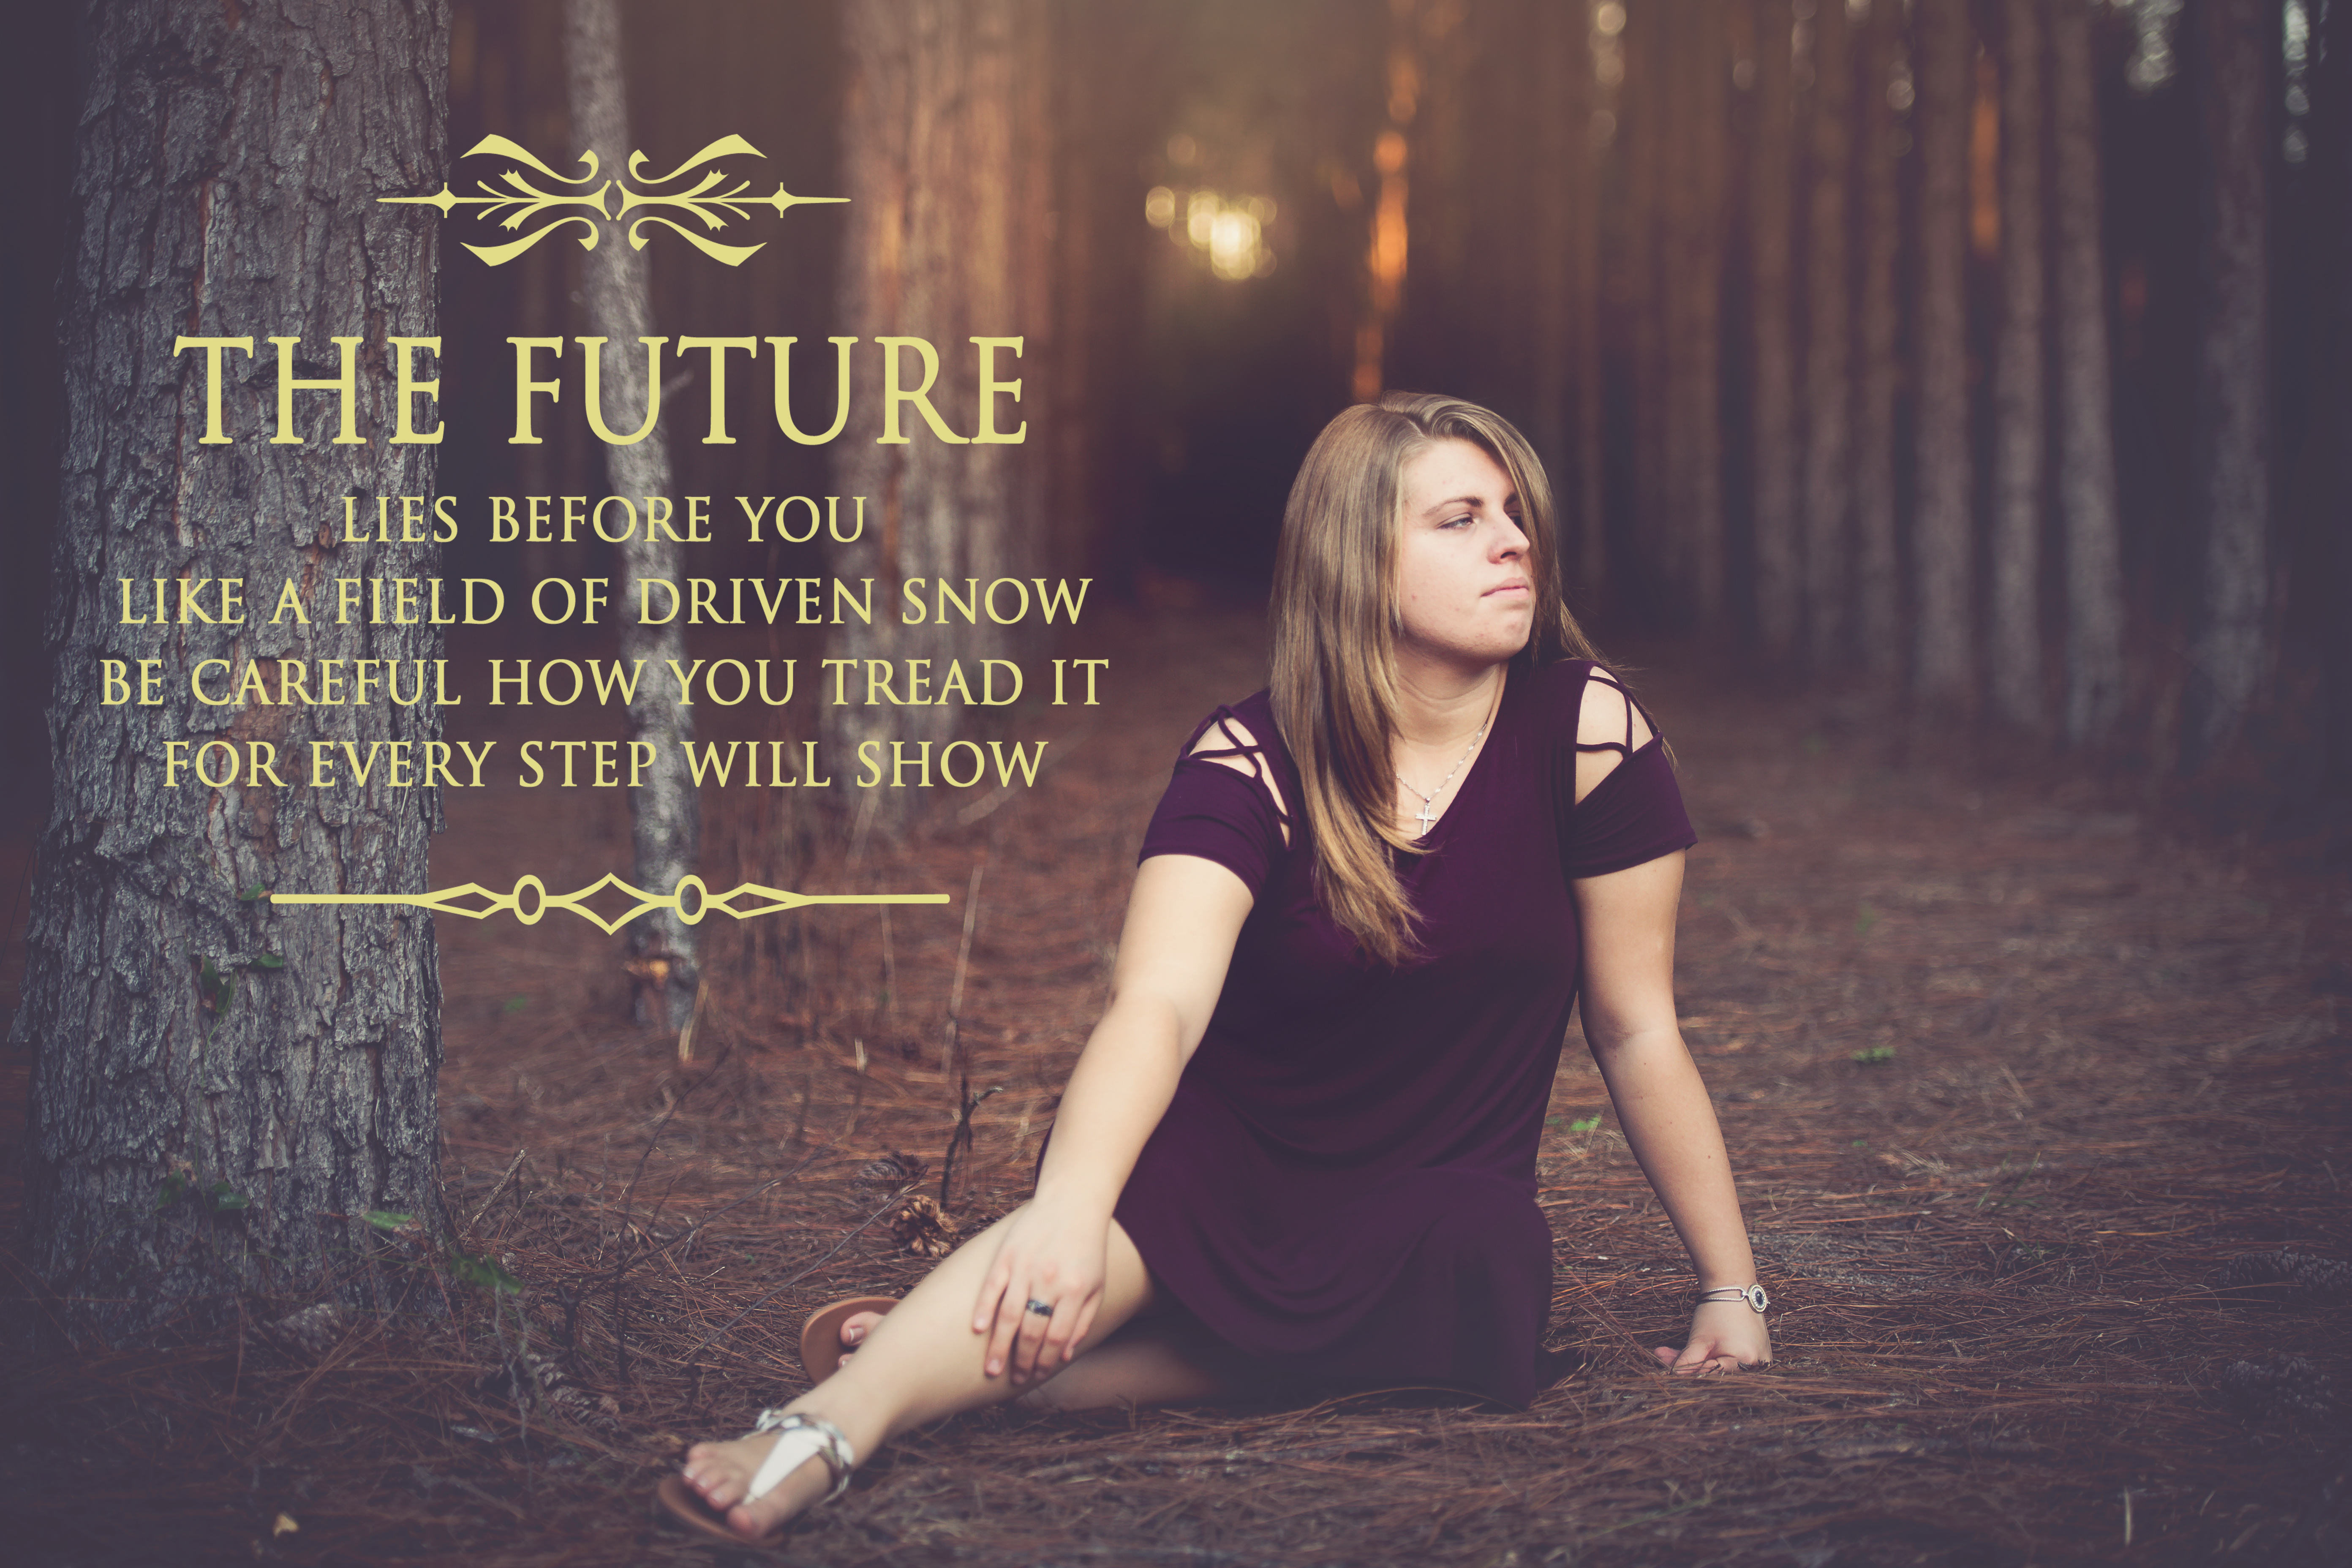 Owens Future Saying  (39 of 85)